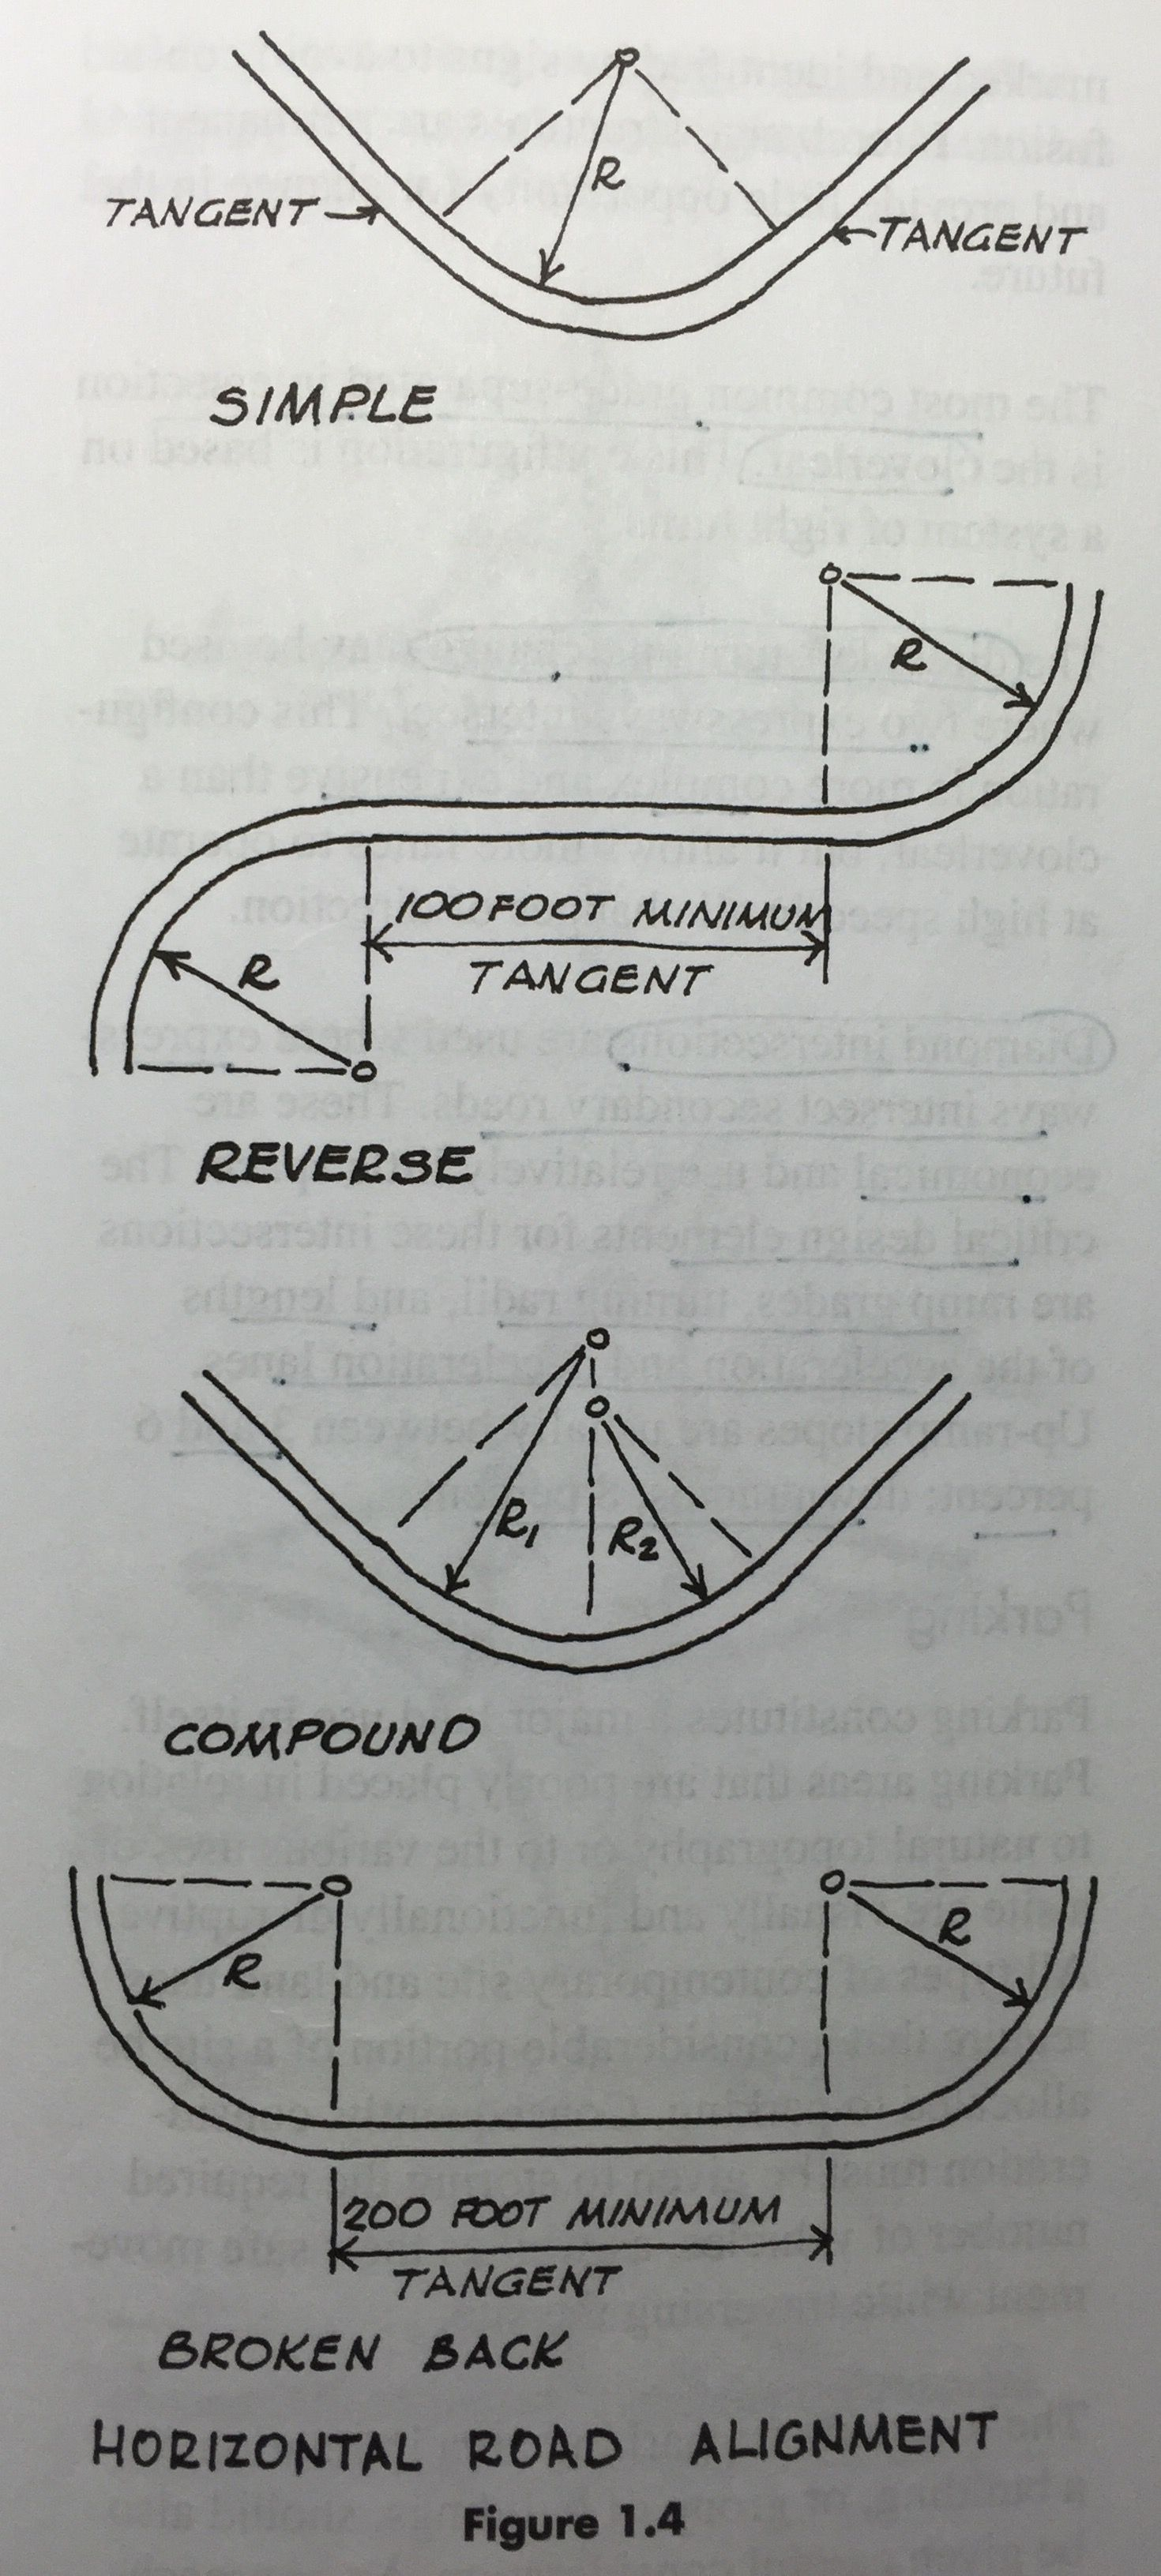 hight resolution of roads consist of tangents straight lines and curves generally arcs of a circle broken back two curves in same direction separated by 200ft tangent